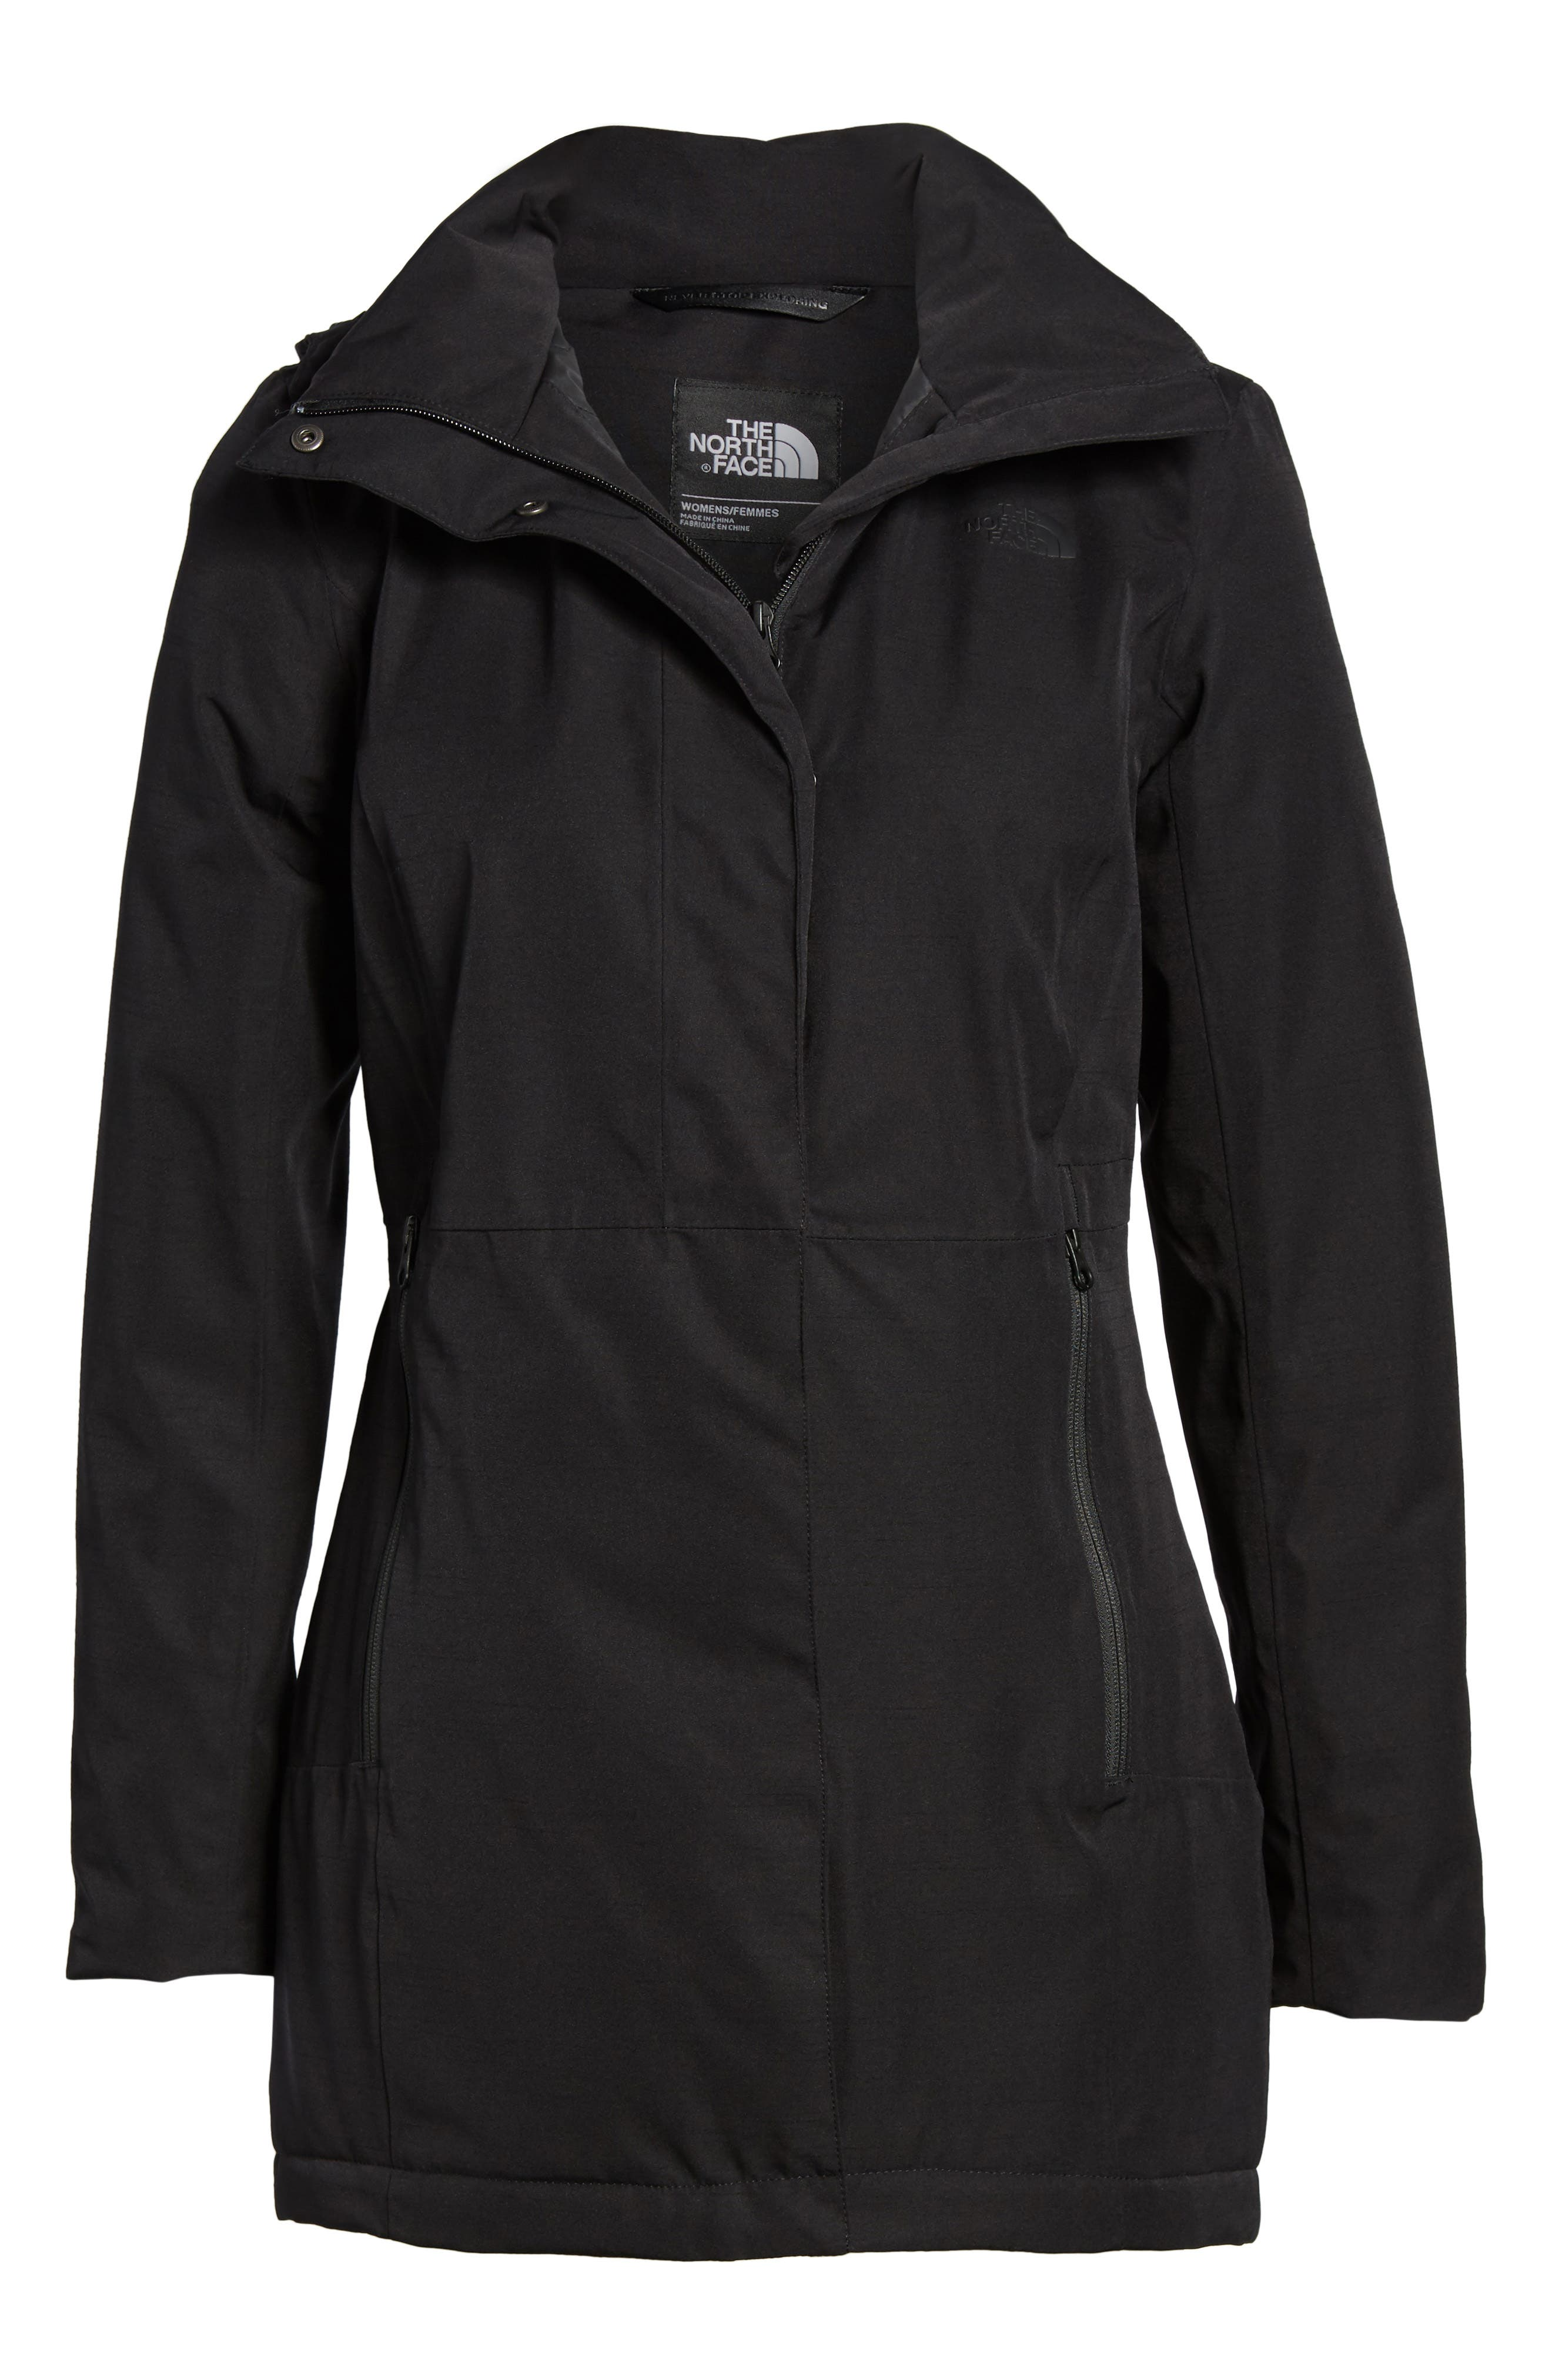 THE NORTH FACE,                             Ancha II Hooded Waterproof Parka,                             Alternate thumbnail 6, color,                             001